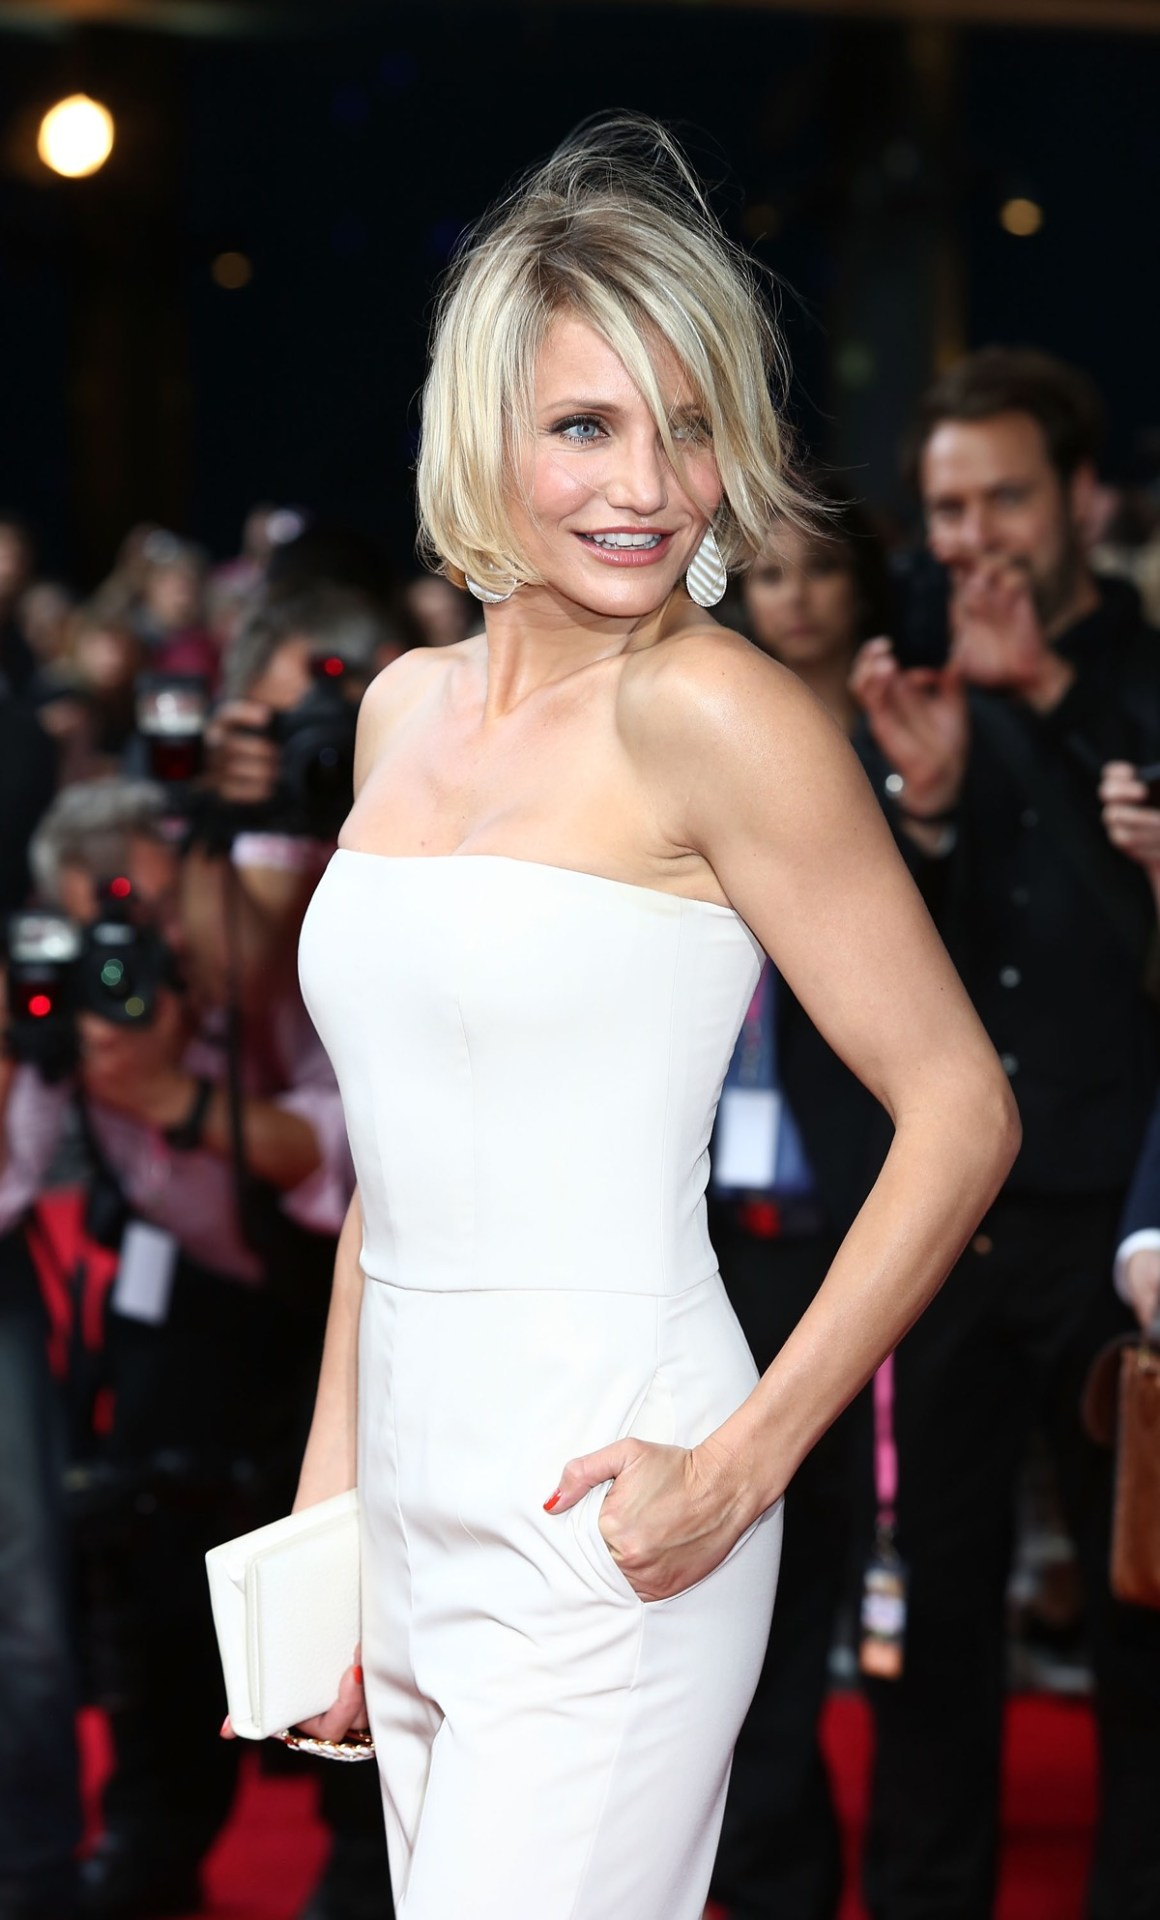 Cameron Diaz What To Expect When You're Expecting - UK Film Premiere